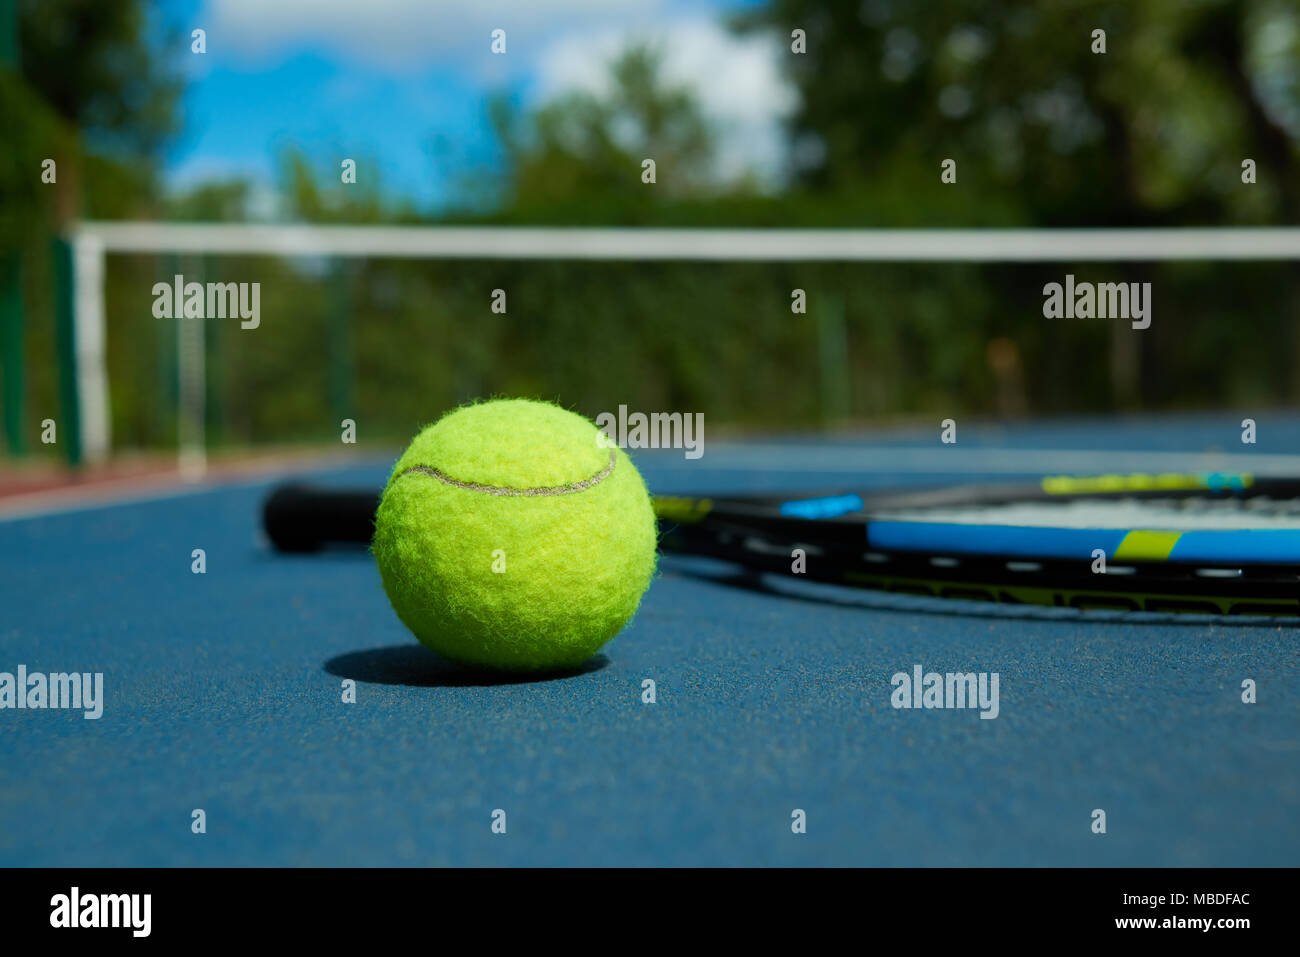 Close up of yellow ball is on tennis racket background, laying on blue tennis court carpet. Photo of professional sport equipment. Concept of tennis outfit photografing. - Stock Image